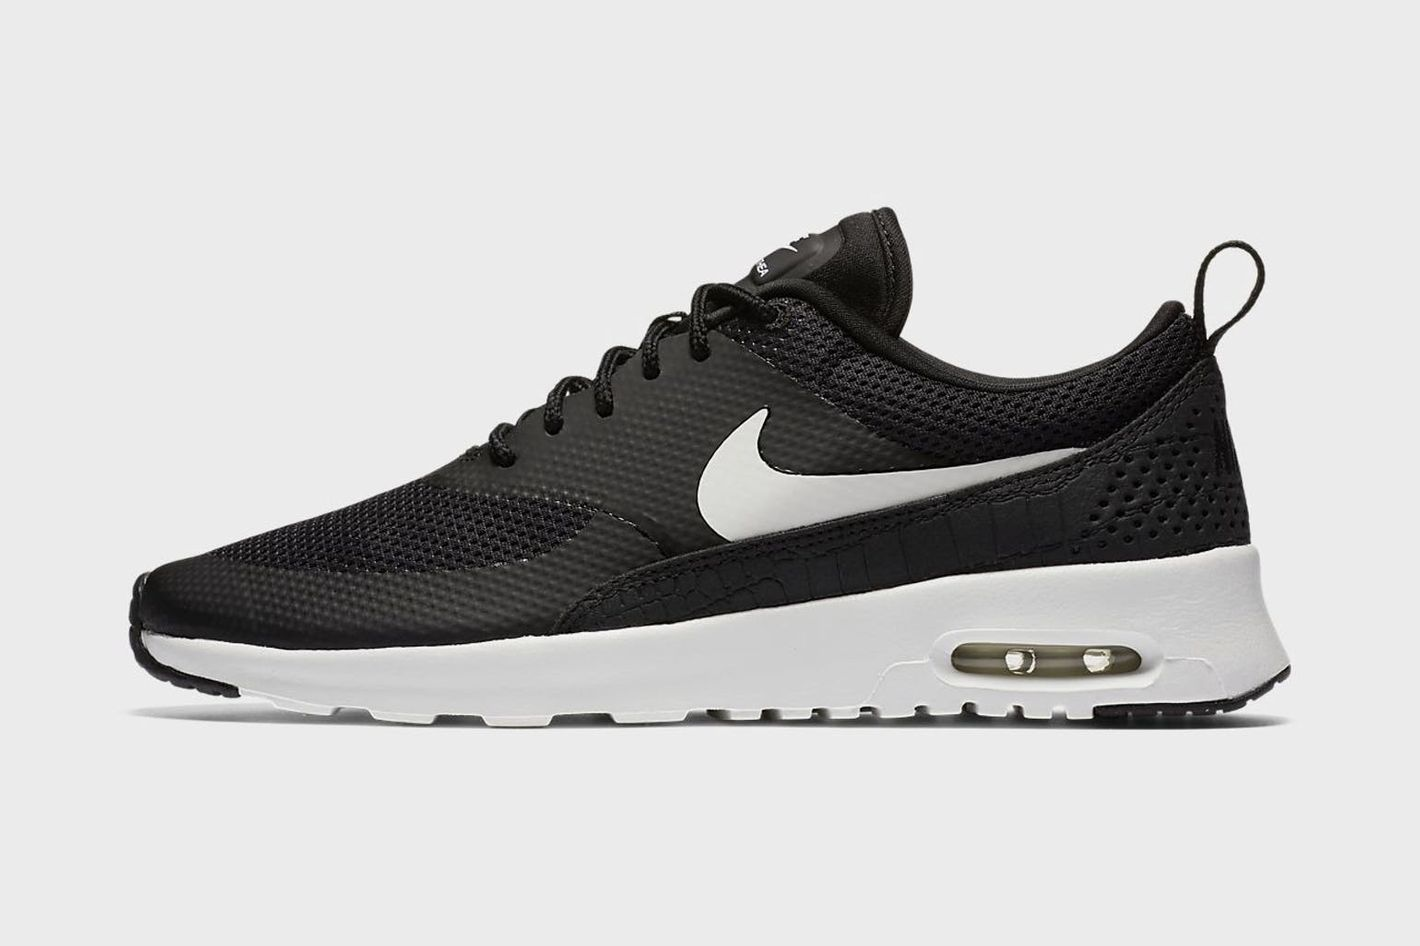 outlet store 7755a a7e2b Nike Air Max Thea